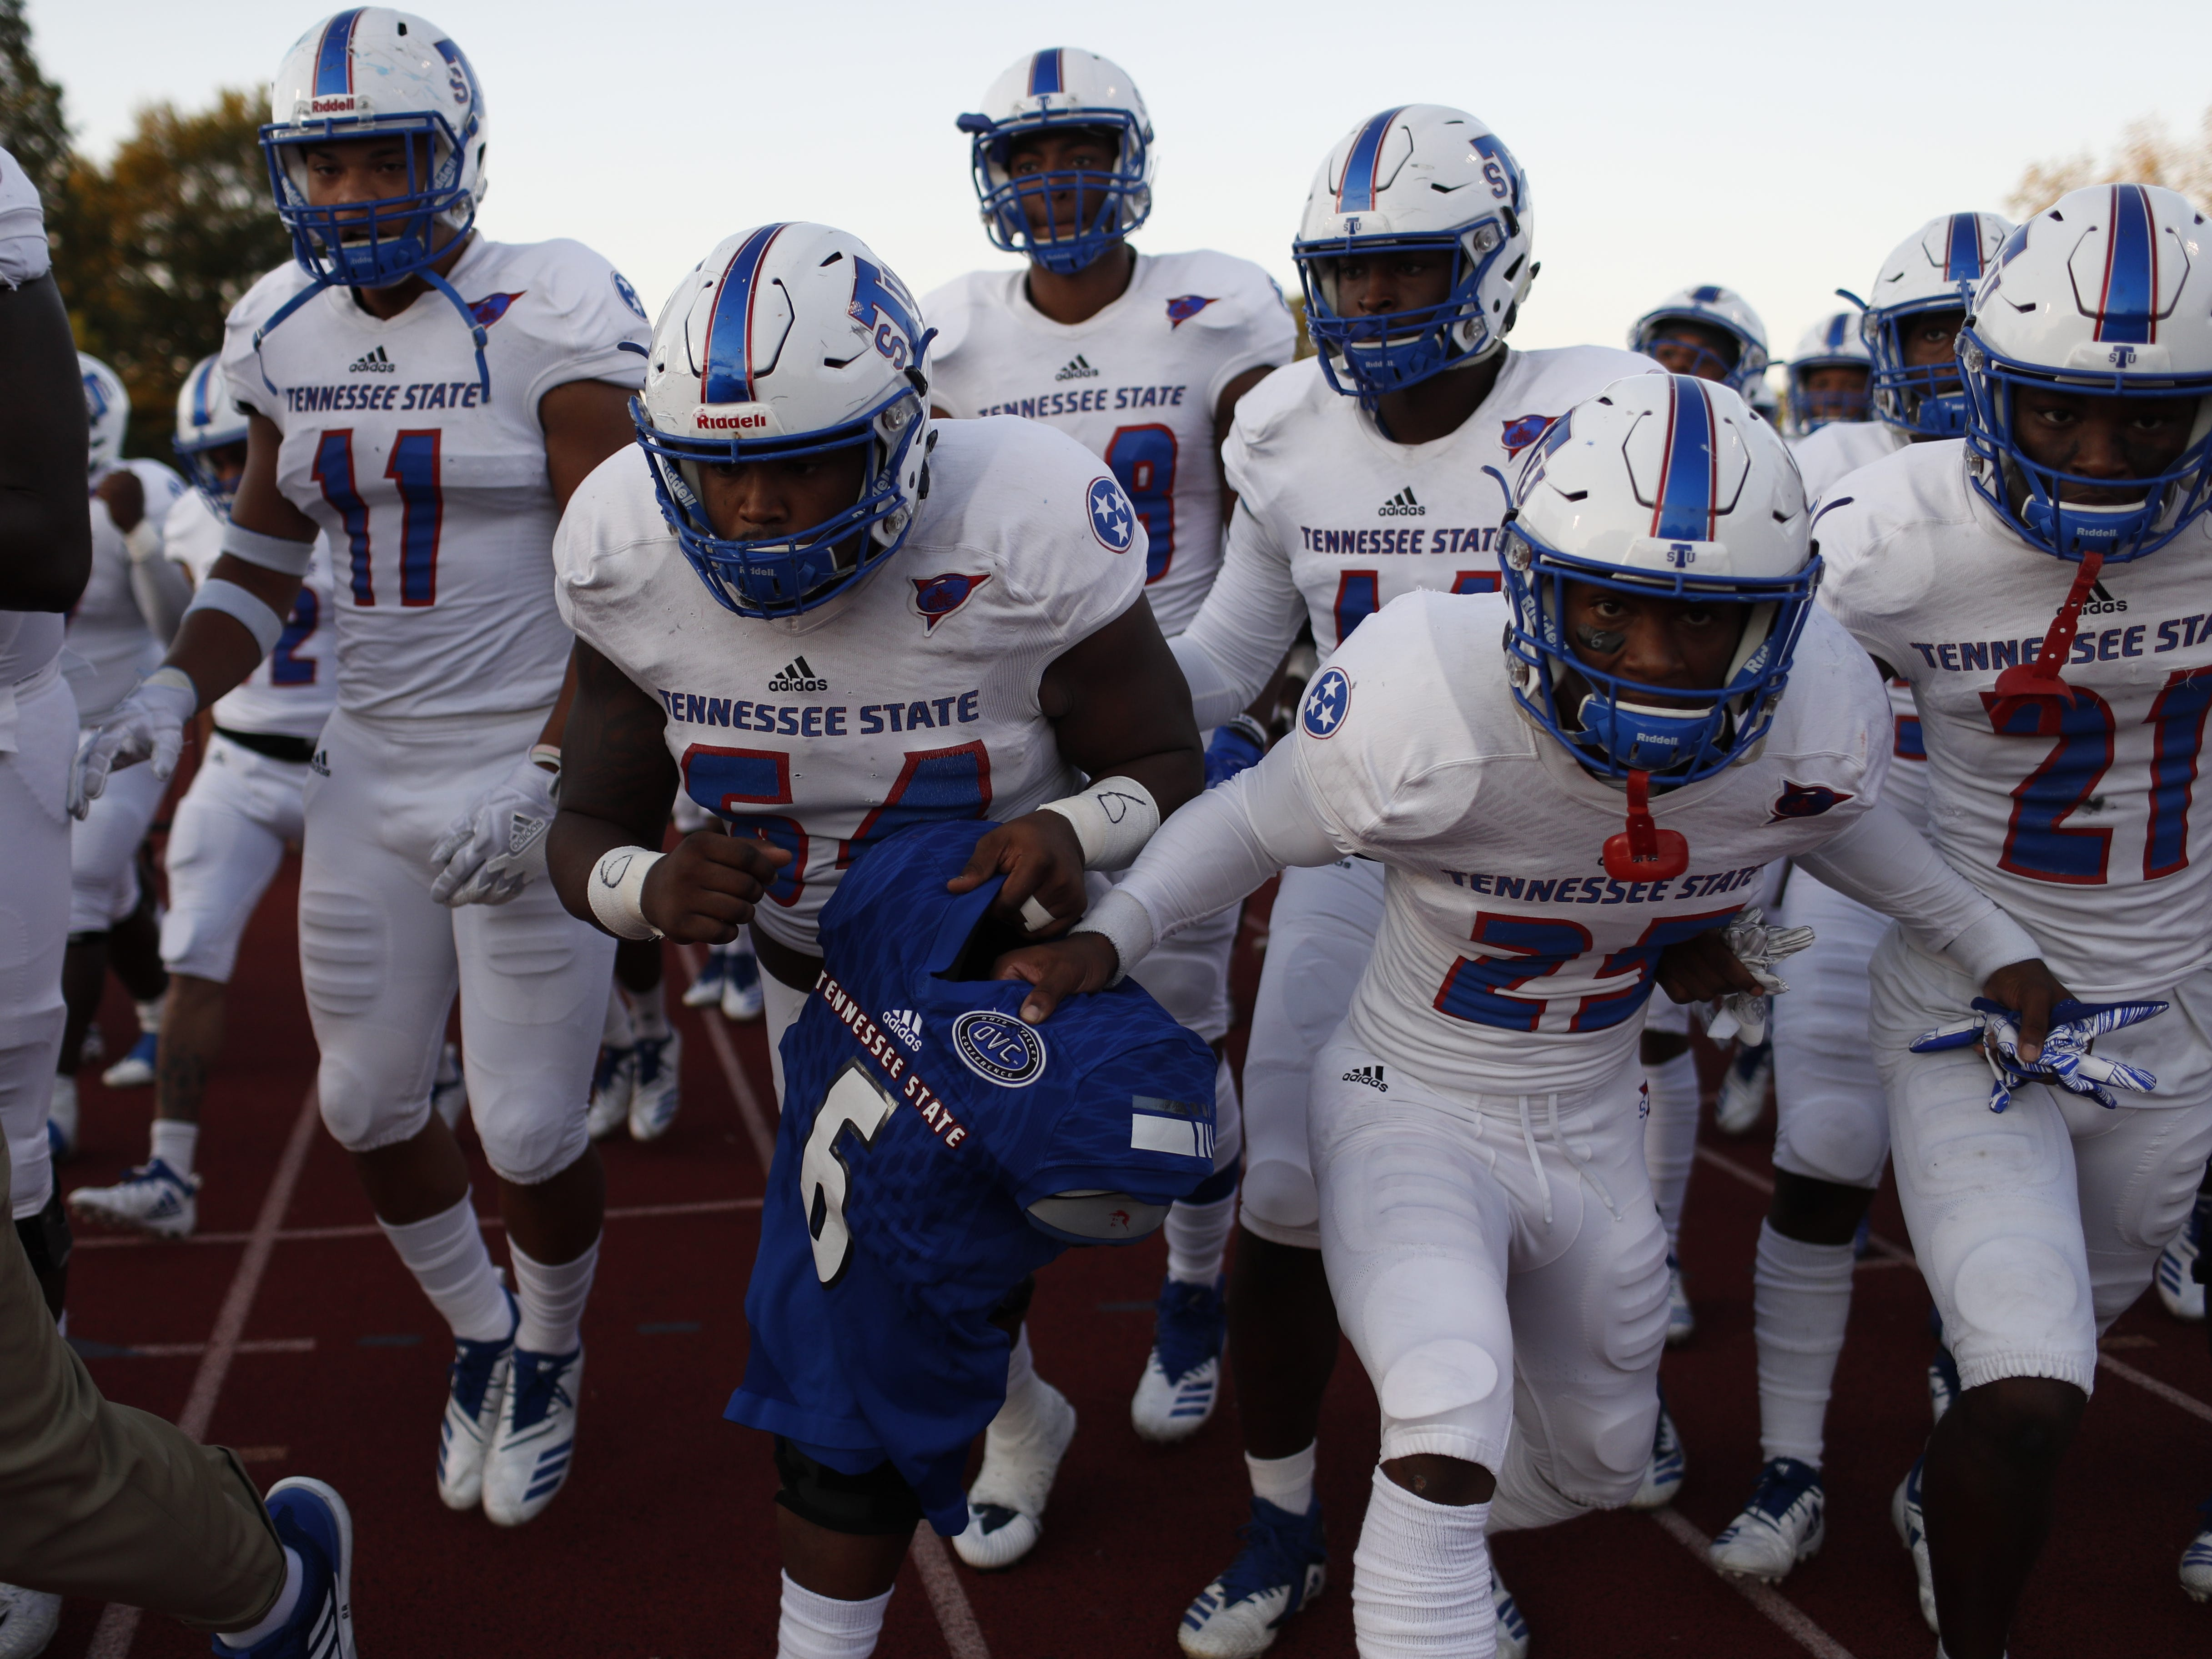 Tennessee State players hold the shoulder pads and jersey of Christion Abercrombie as they walk out onto the field before the Tigers' game at Austin Peay on Saturday, October 6, 2018.